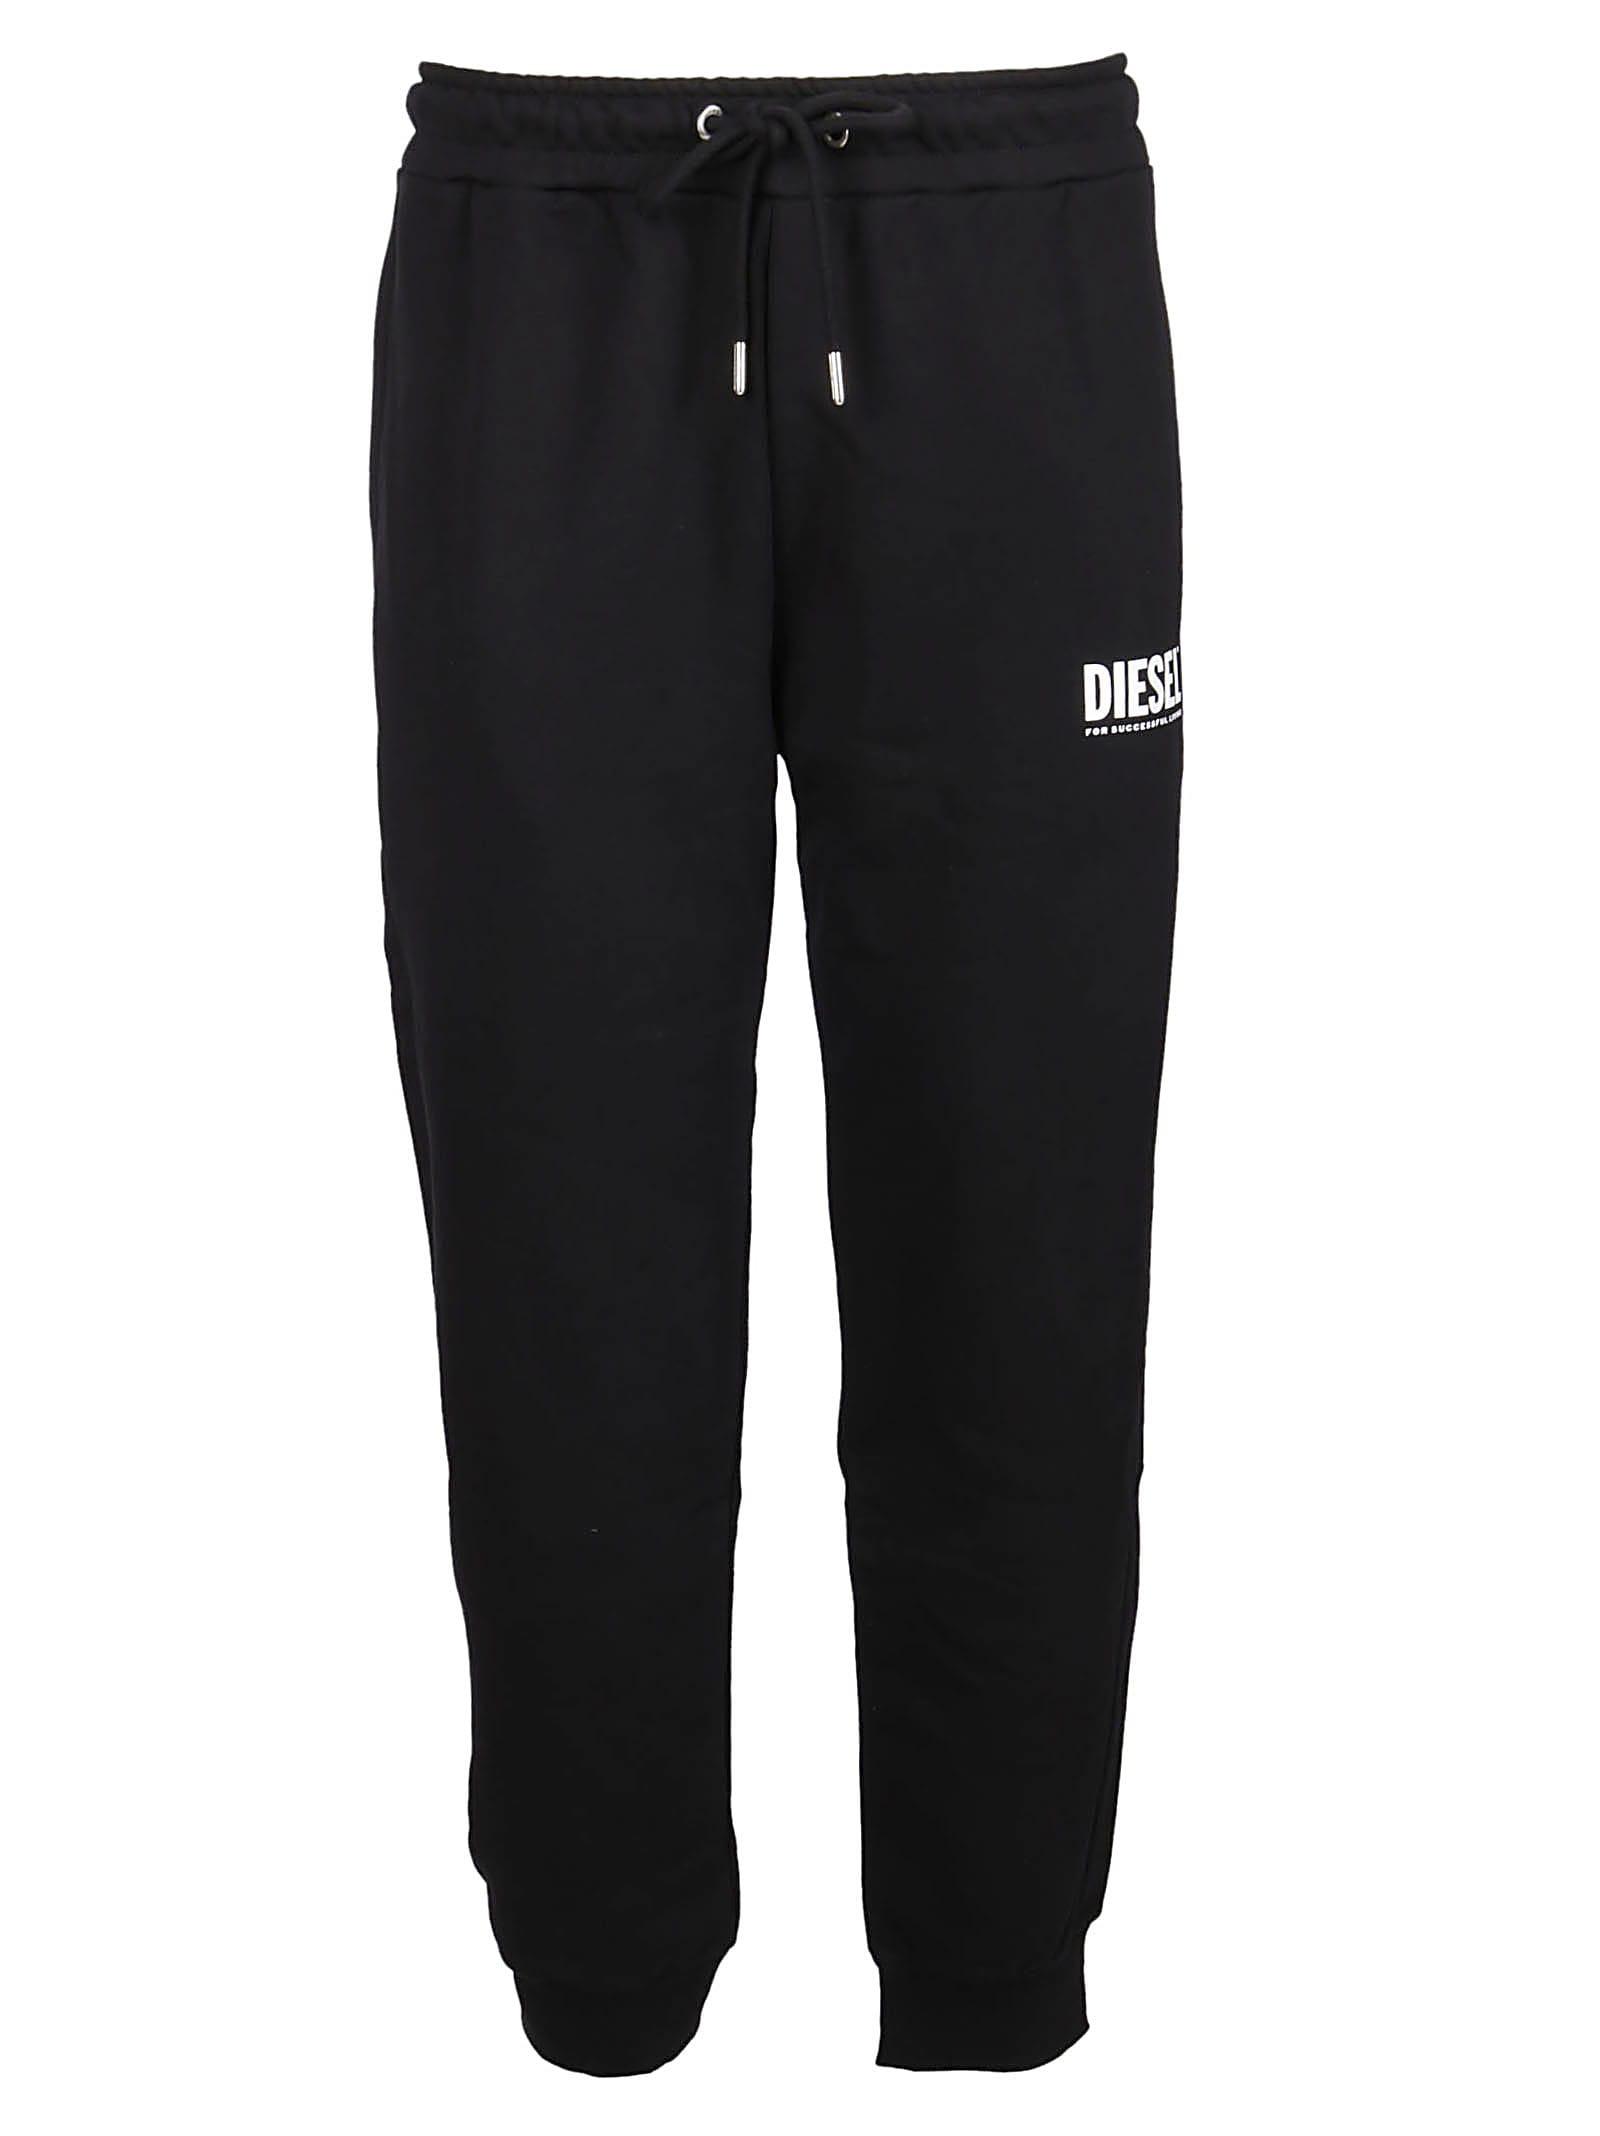 Diesel Black Cotton Track Pants